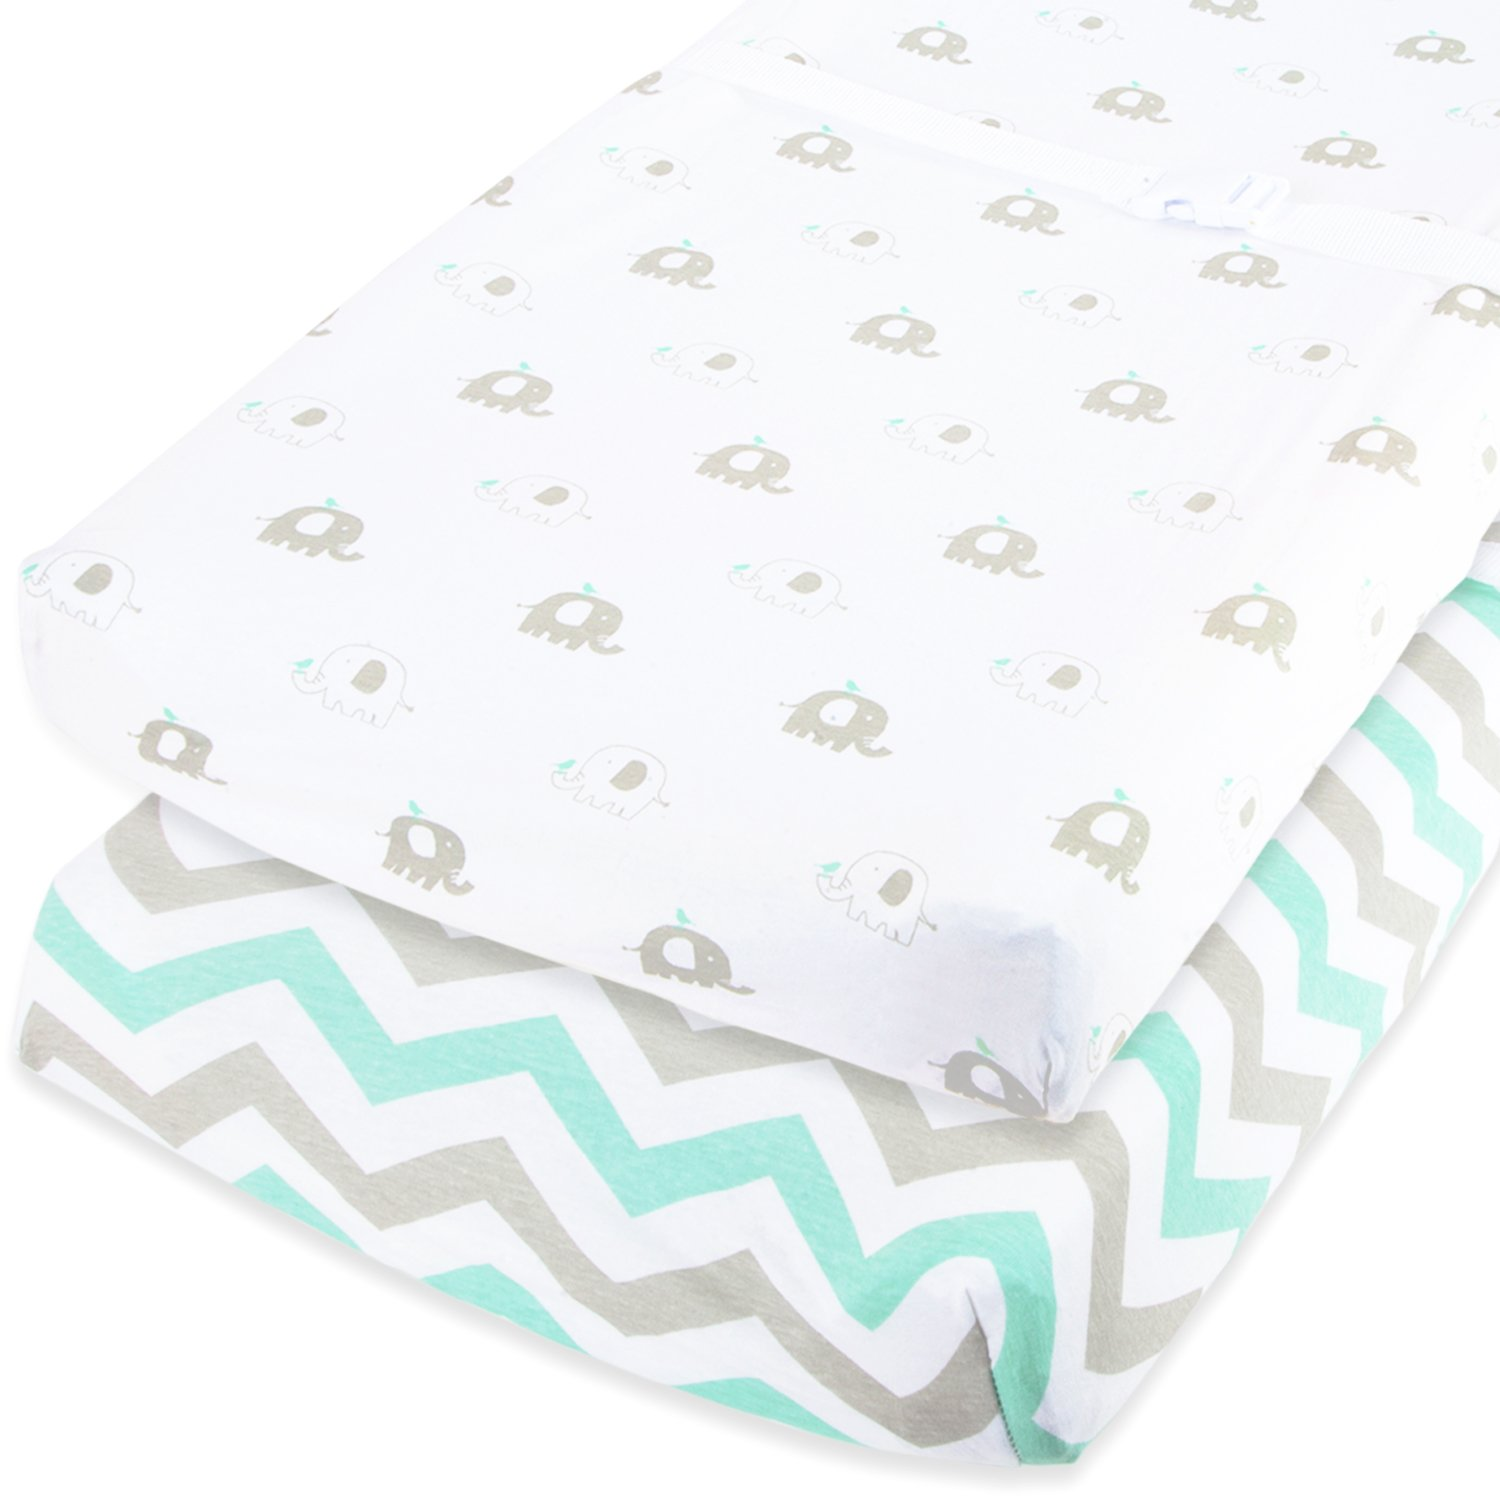 Bassinet Sheets Set 2 Pack for Boy & Girl by Cuddly Cubs | Soft & Breathable 100% Jersey Cotton | Fitted Elastic Design | Mint & Grey Chevron & Elephants | Fits Oval, Halo, Chicco Lullago, Arms Reach Orion Brands